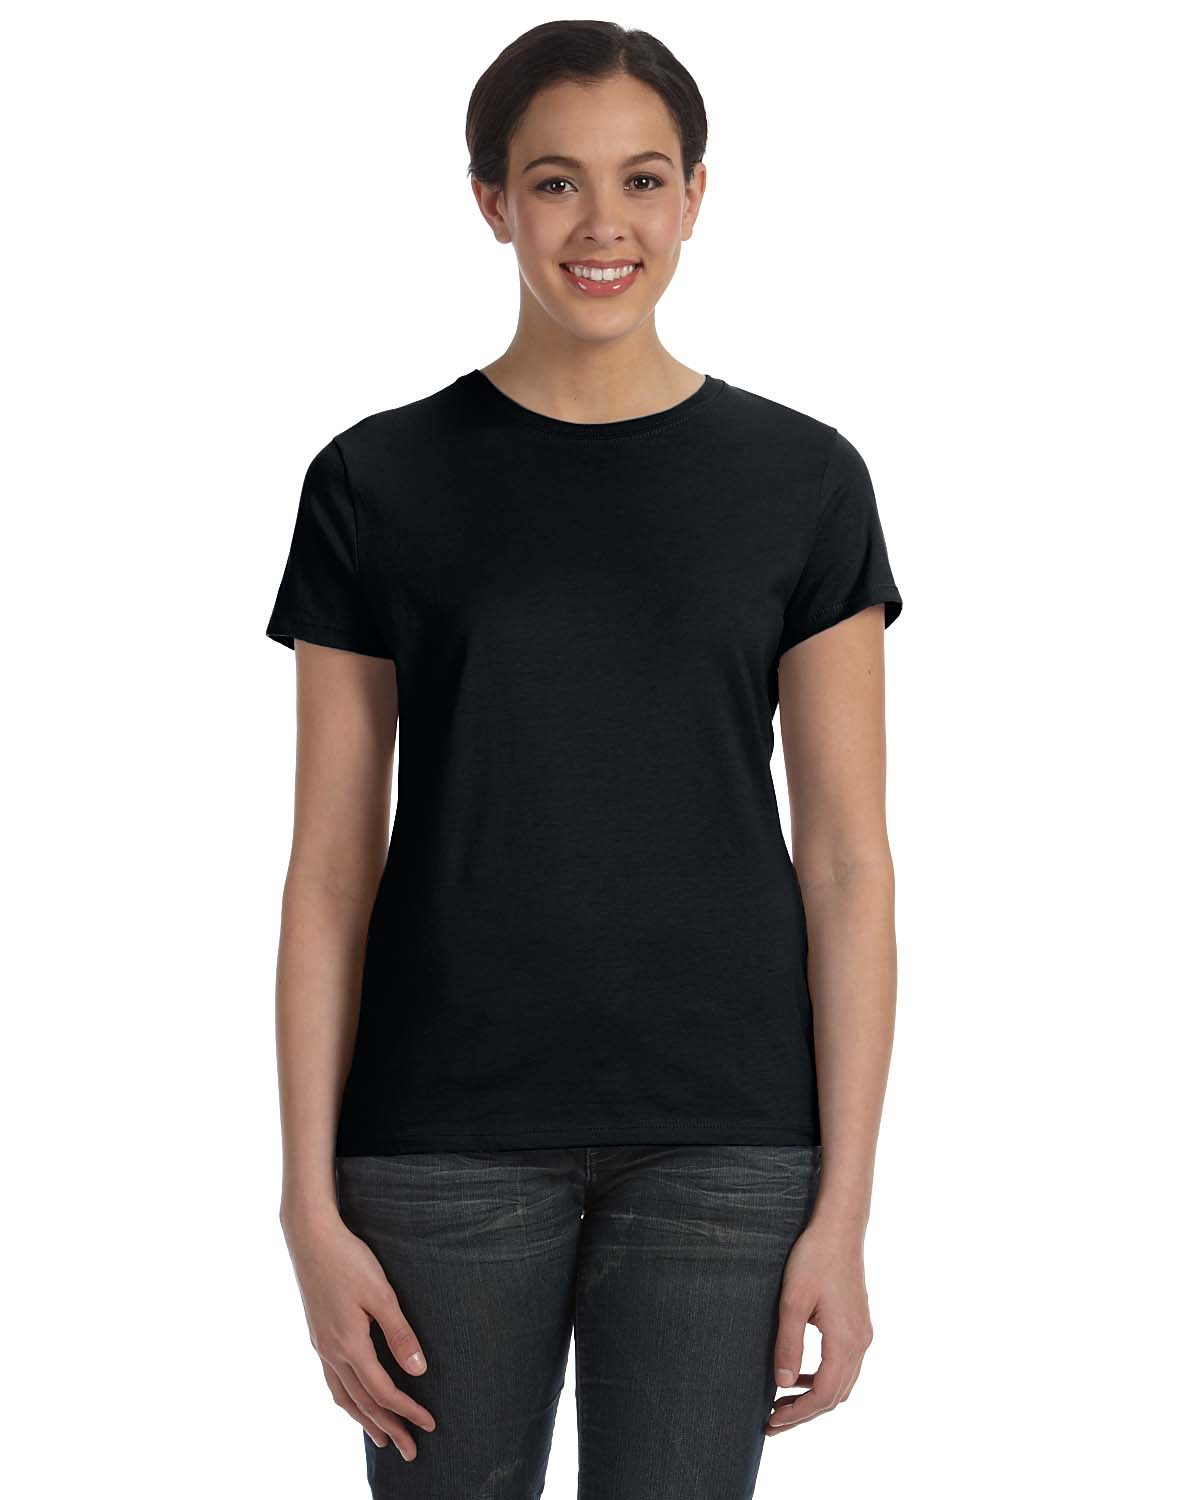 494a7b65 Hanes SL04 Ladies' 4.5 oz., 100% Ringspun Cotton nano-T® T-Shirt ...